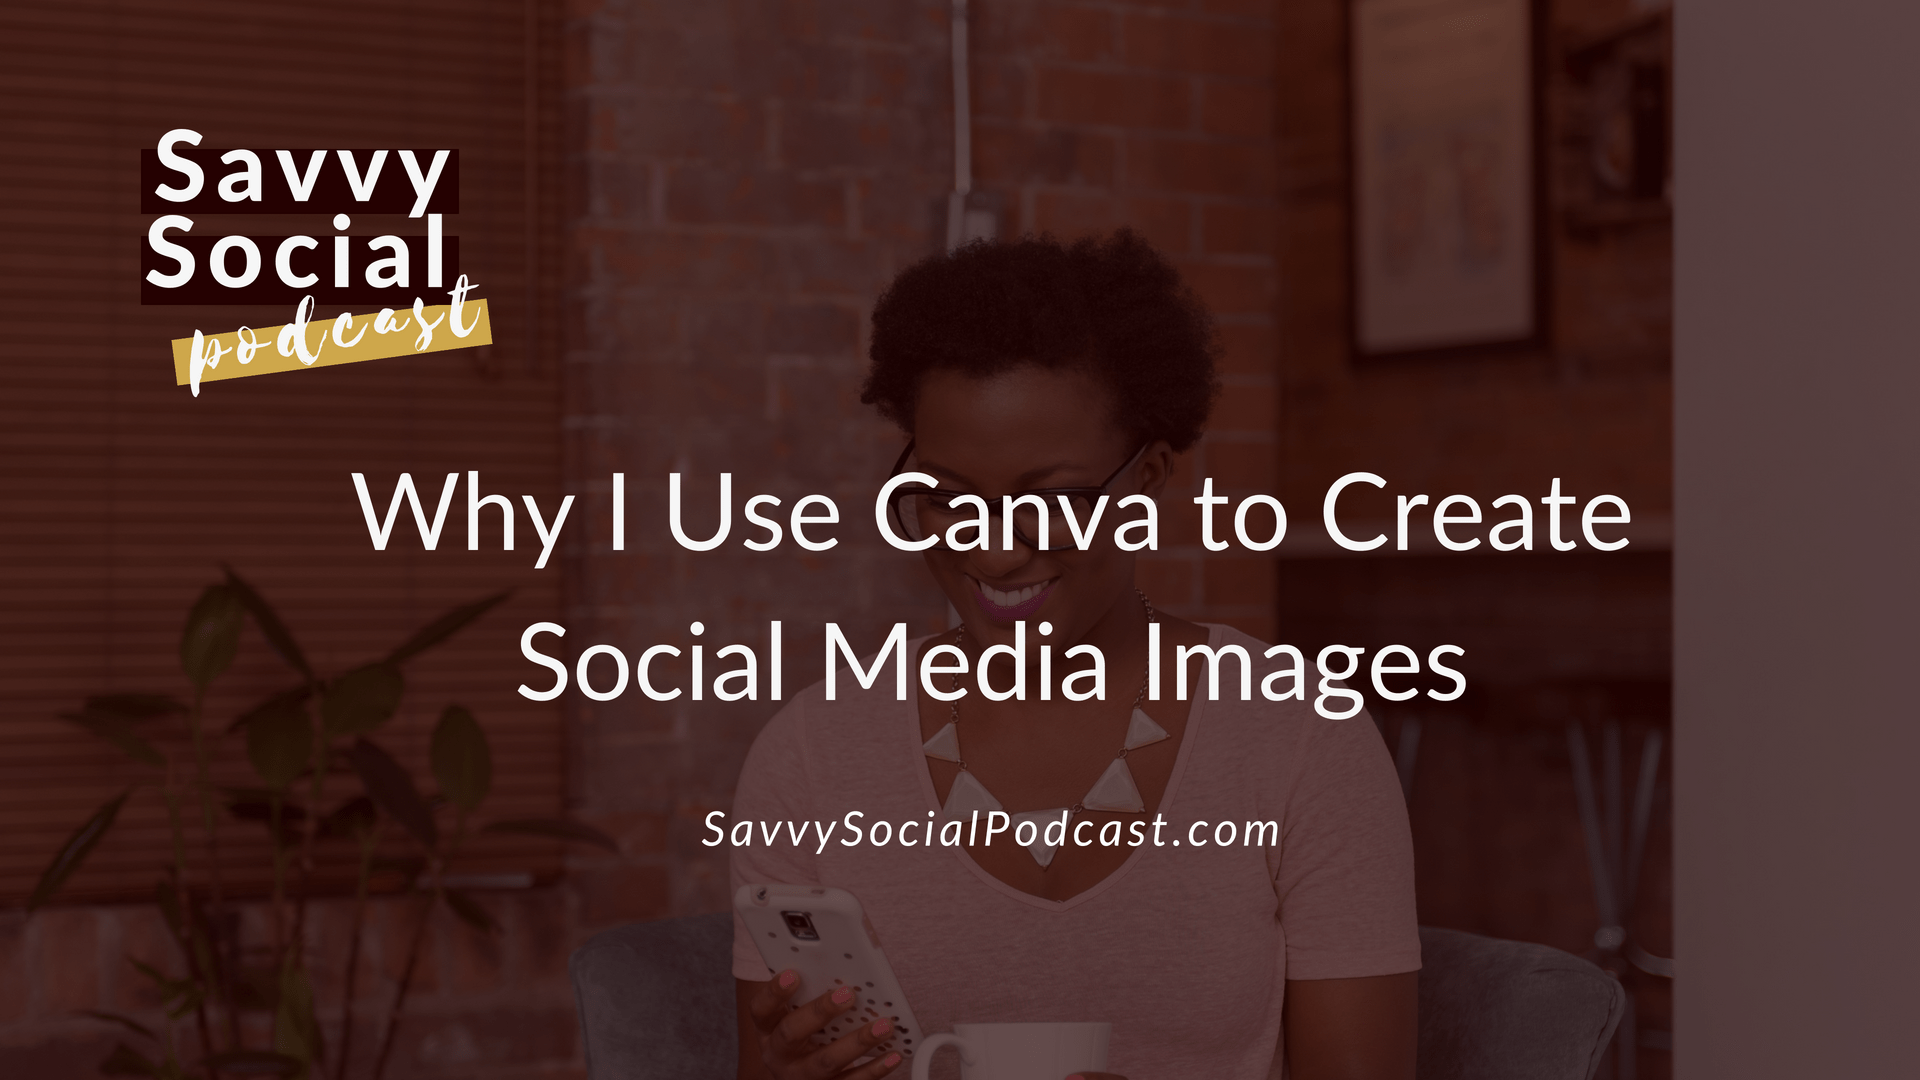 Why I Use Canva to Create Social Media Images (YouTube)